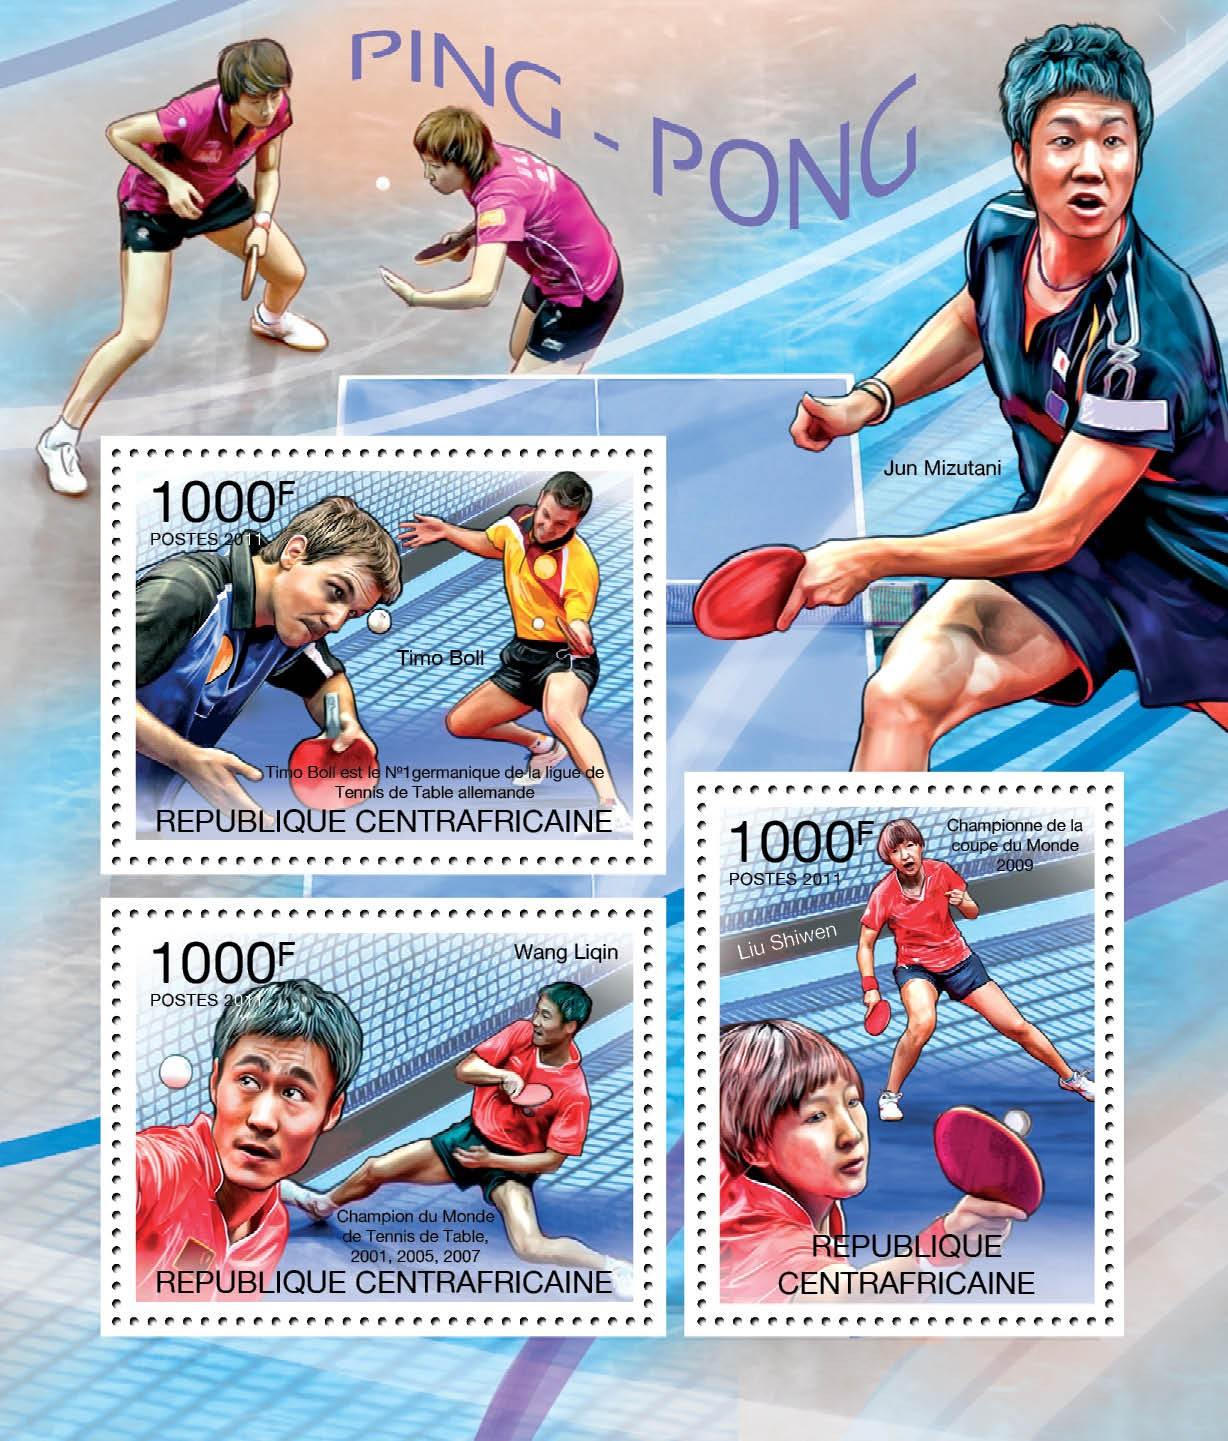 Table Tennis, (T.Boll, W.Ligin, L.Shiwen). - Issue of Central African republic postage stamps